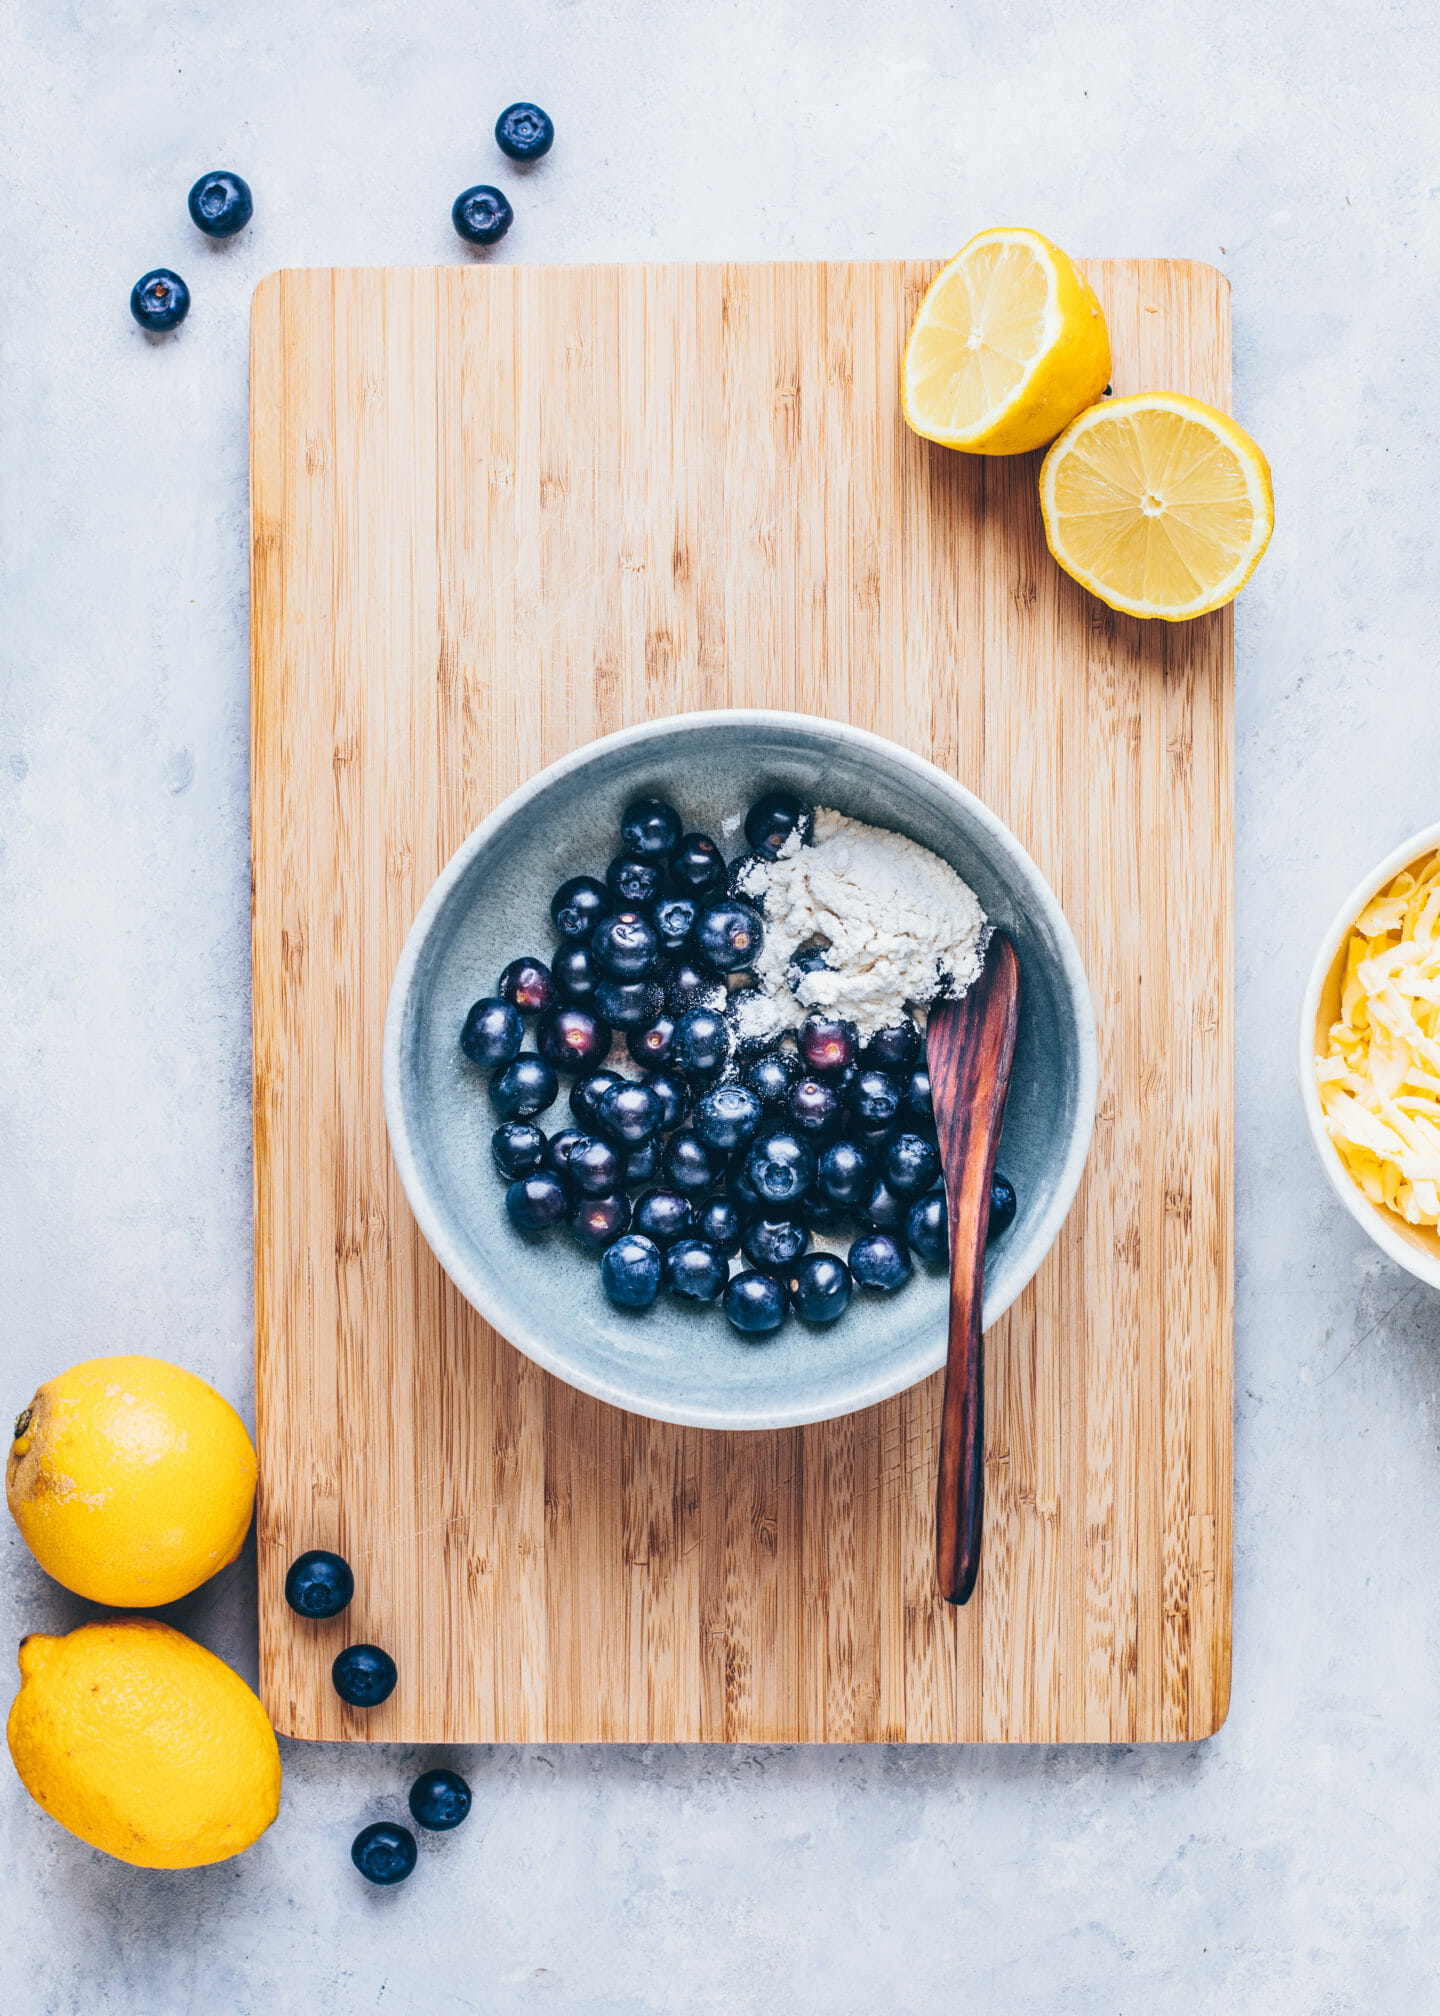 blueberries with cornstarch and flour in a bowl